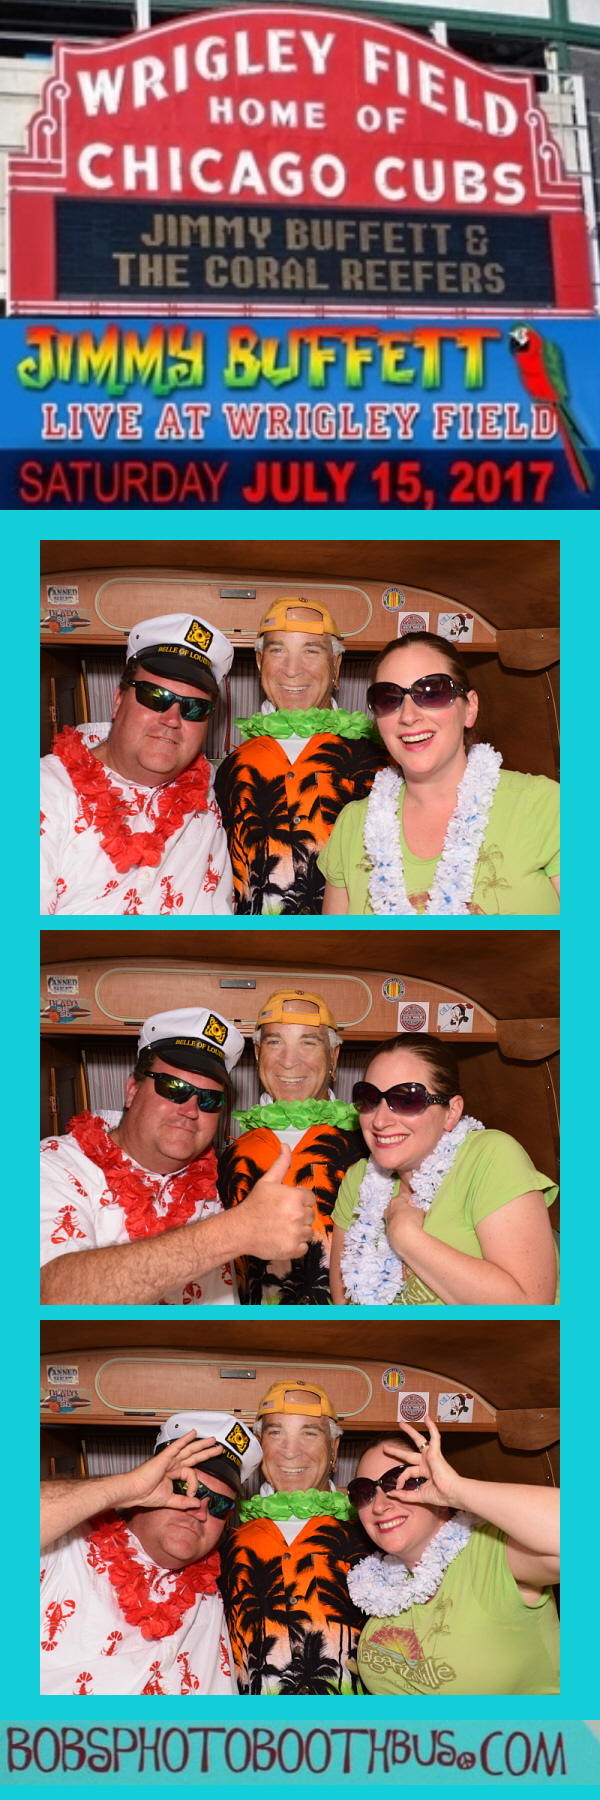 Jimmy Buffett final photo strip graphic_55.jpg